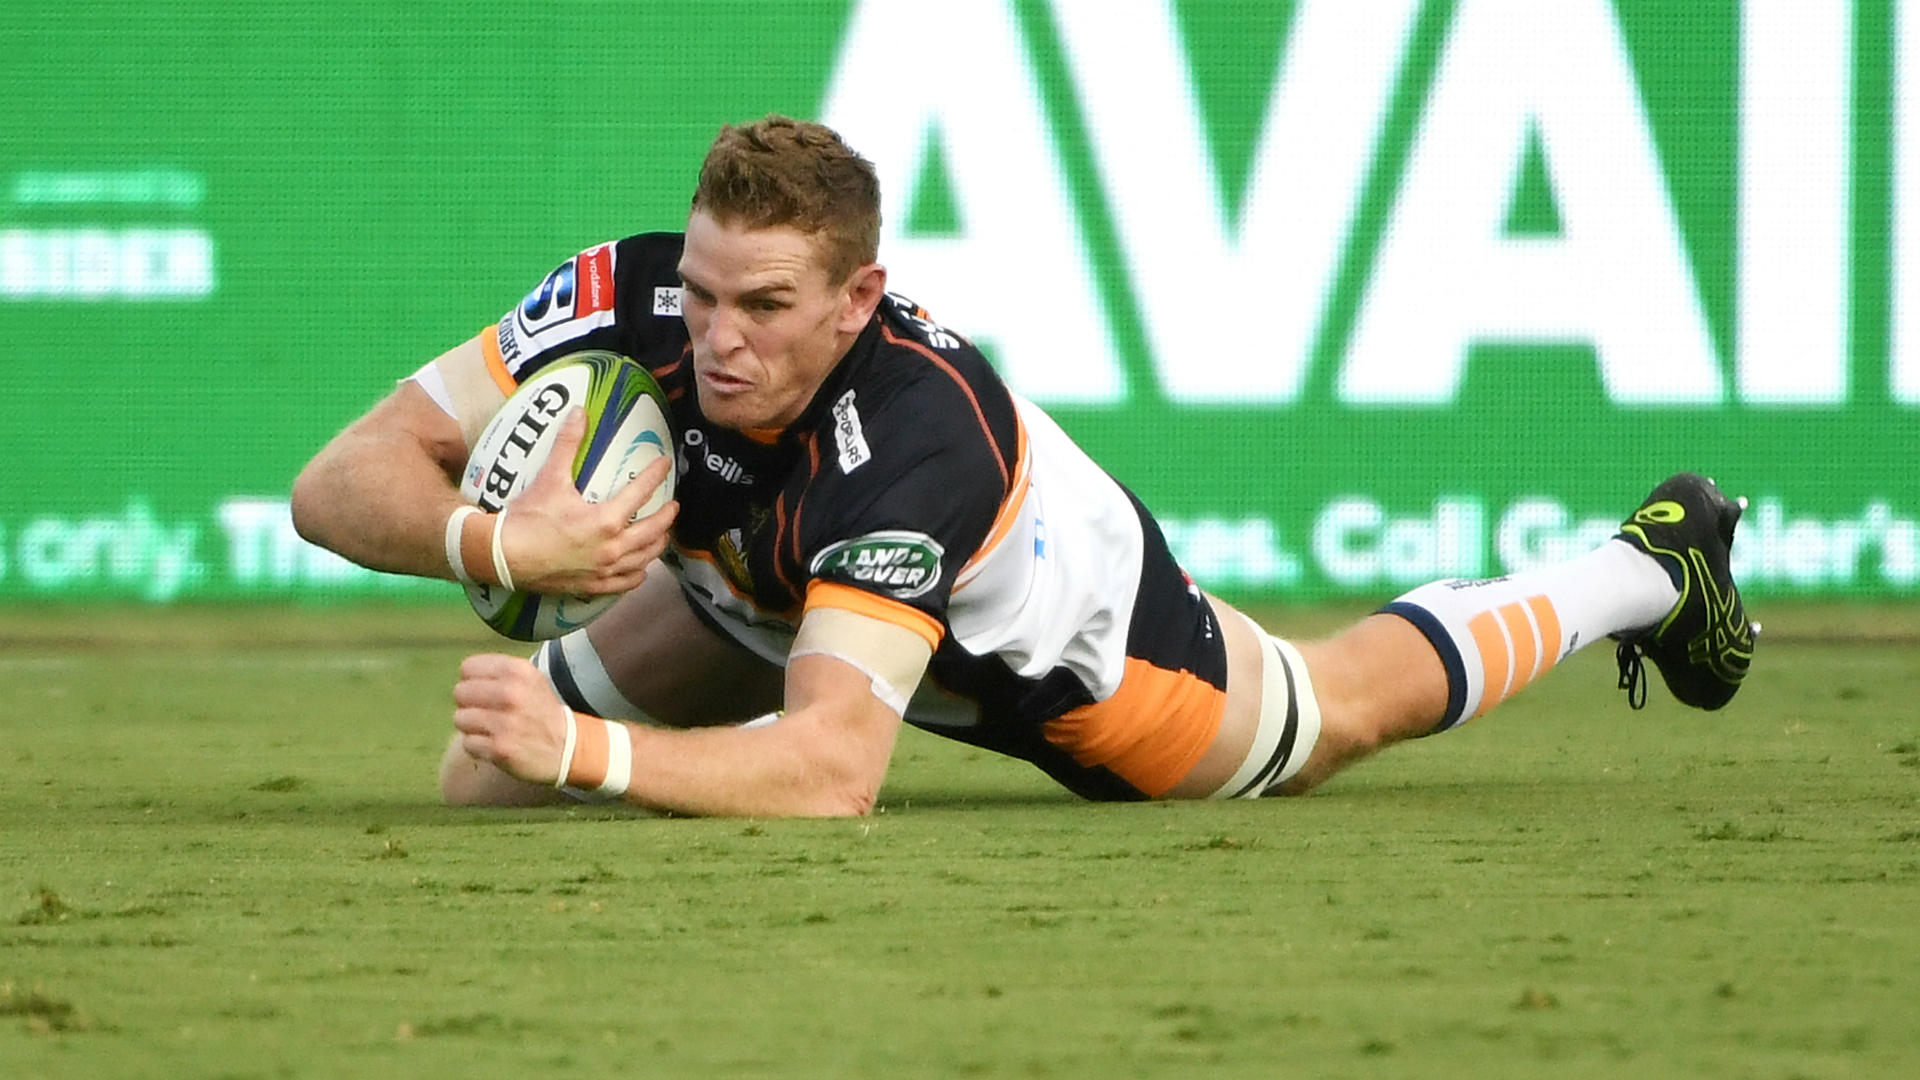 Brumbies and Sharks impress by sealing early back-to-back Super Rugby wins